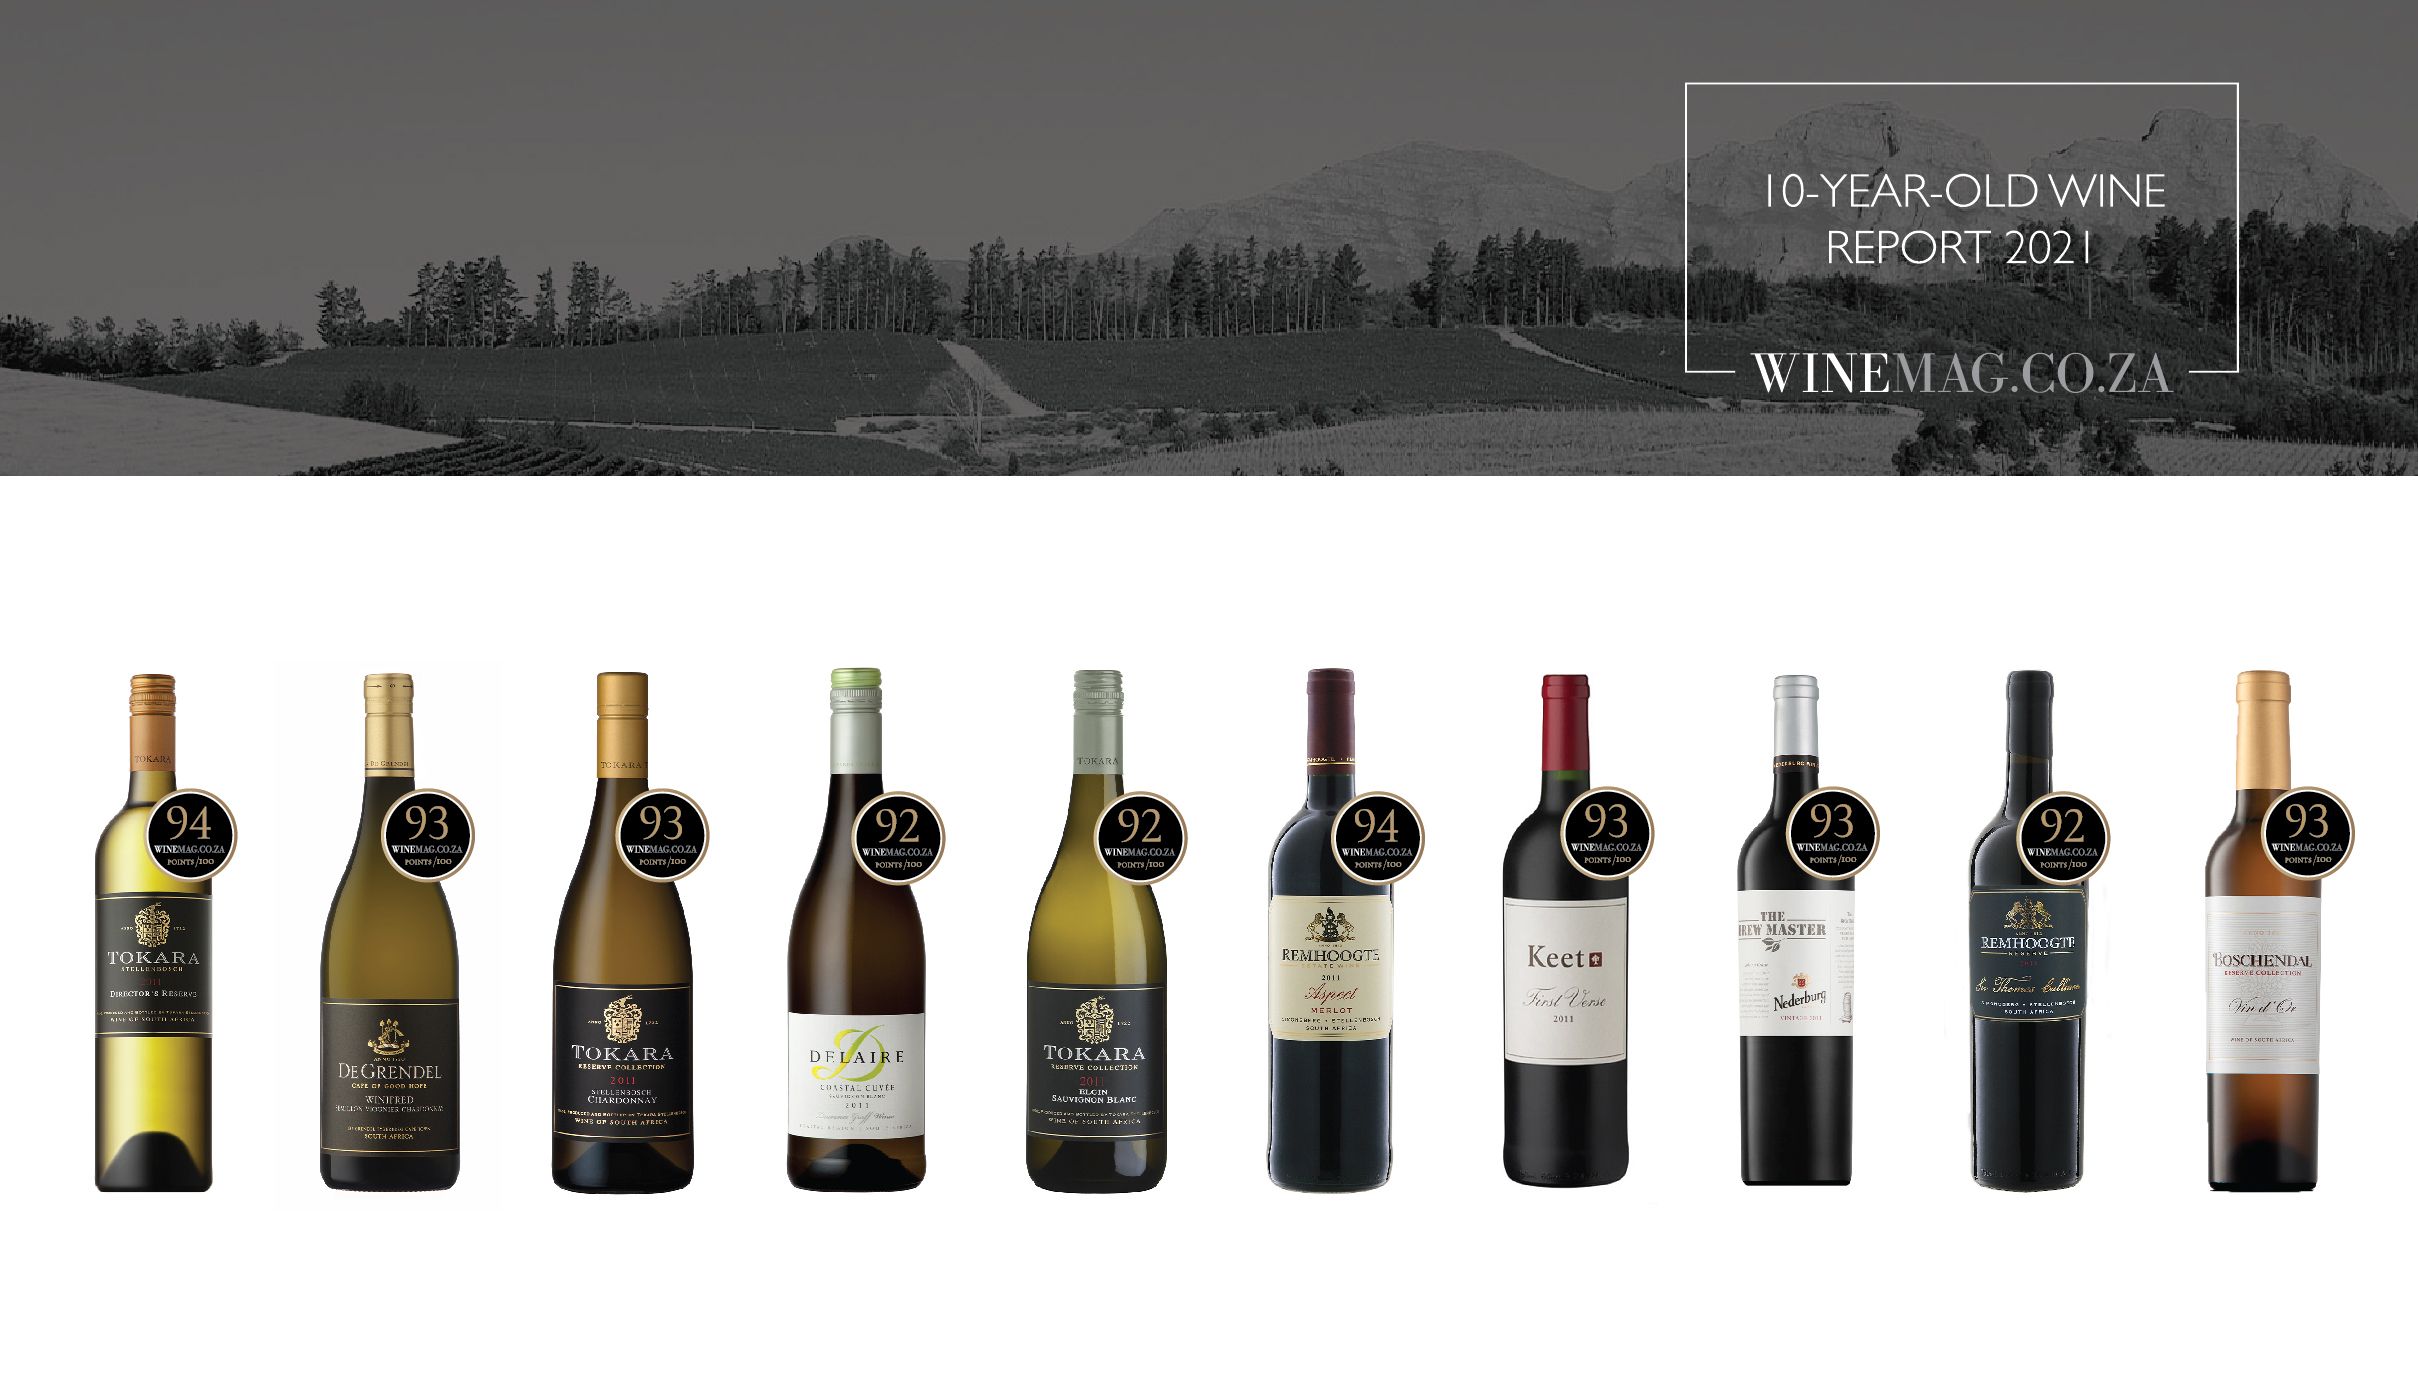 10-Year-Old Wine Report 2021 Is Live And Nederburg Takes The Lead photo